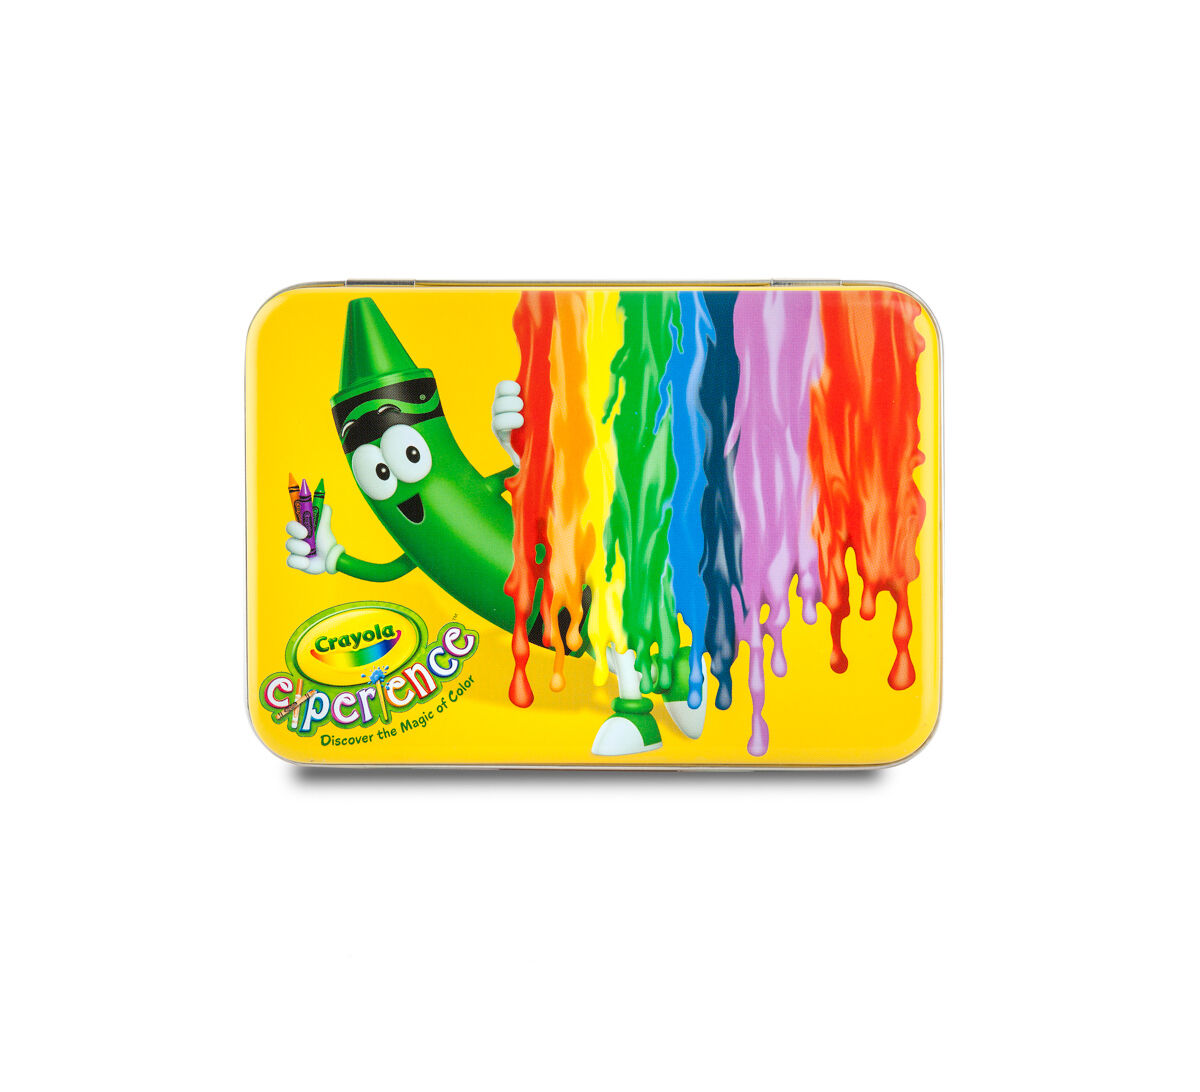 Crayola Dripping Wax Crayon Storage Tin  sc 1 st  Shop Crayola & Crayola Dripping Wax Crayon Storage Tin - Crayola